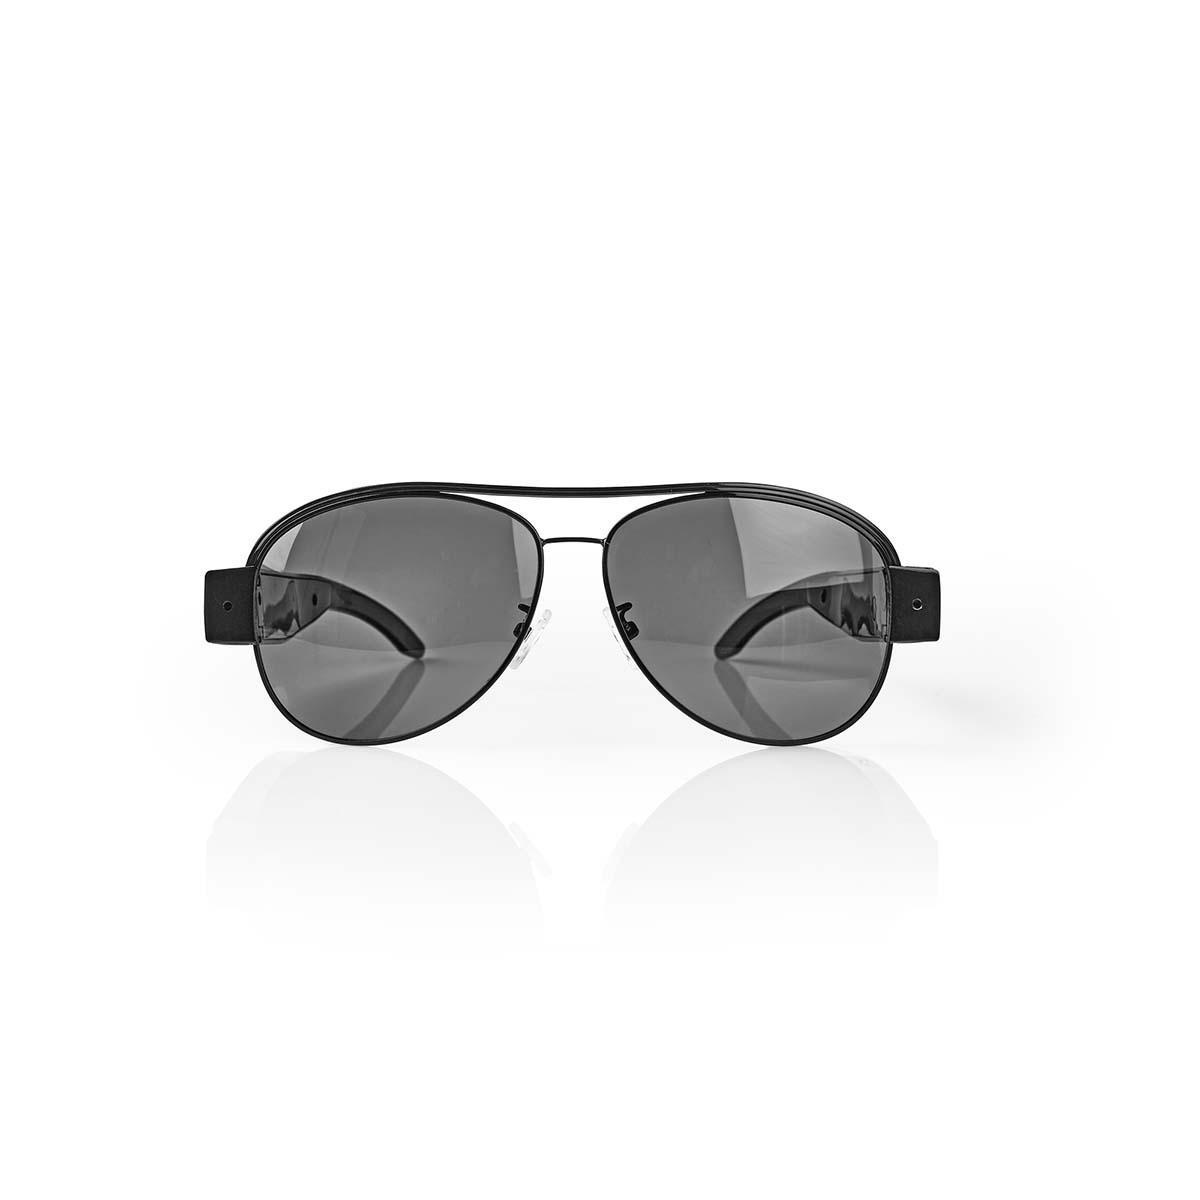 Sunglasses with Integrated Camera | 1920x1080 video | 4032x3024 photo | Rechargeable Put on these sunglasses with a hidden camera and make unobtrusive shots. The sunglasses are not only ideal as a spycam, but can also be used for filming sporting activiti